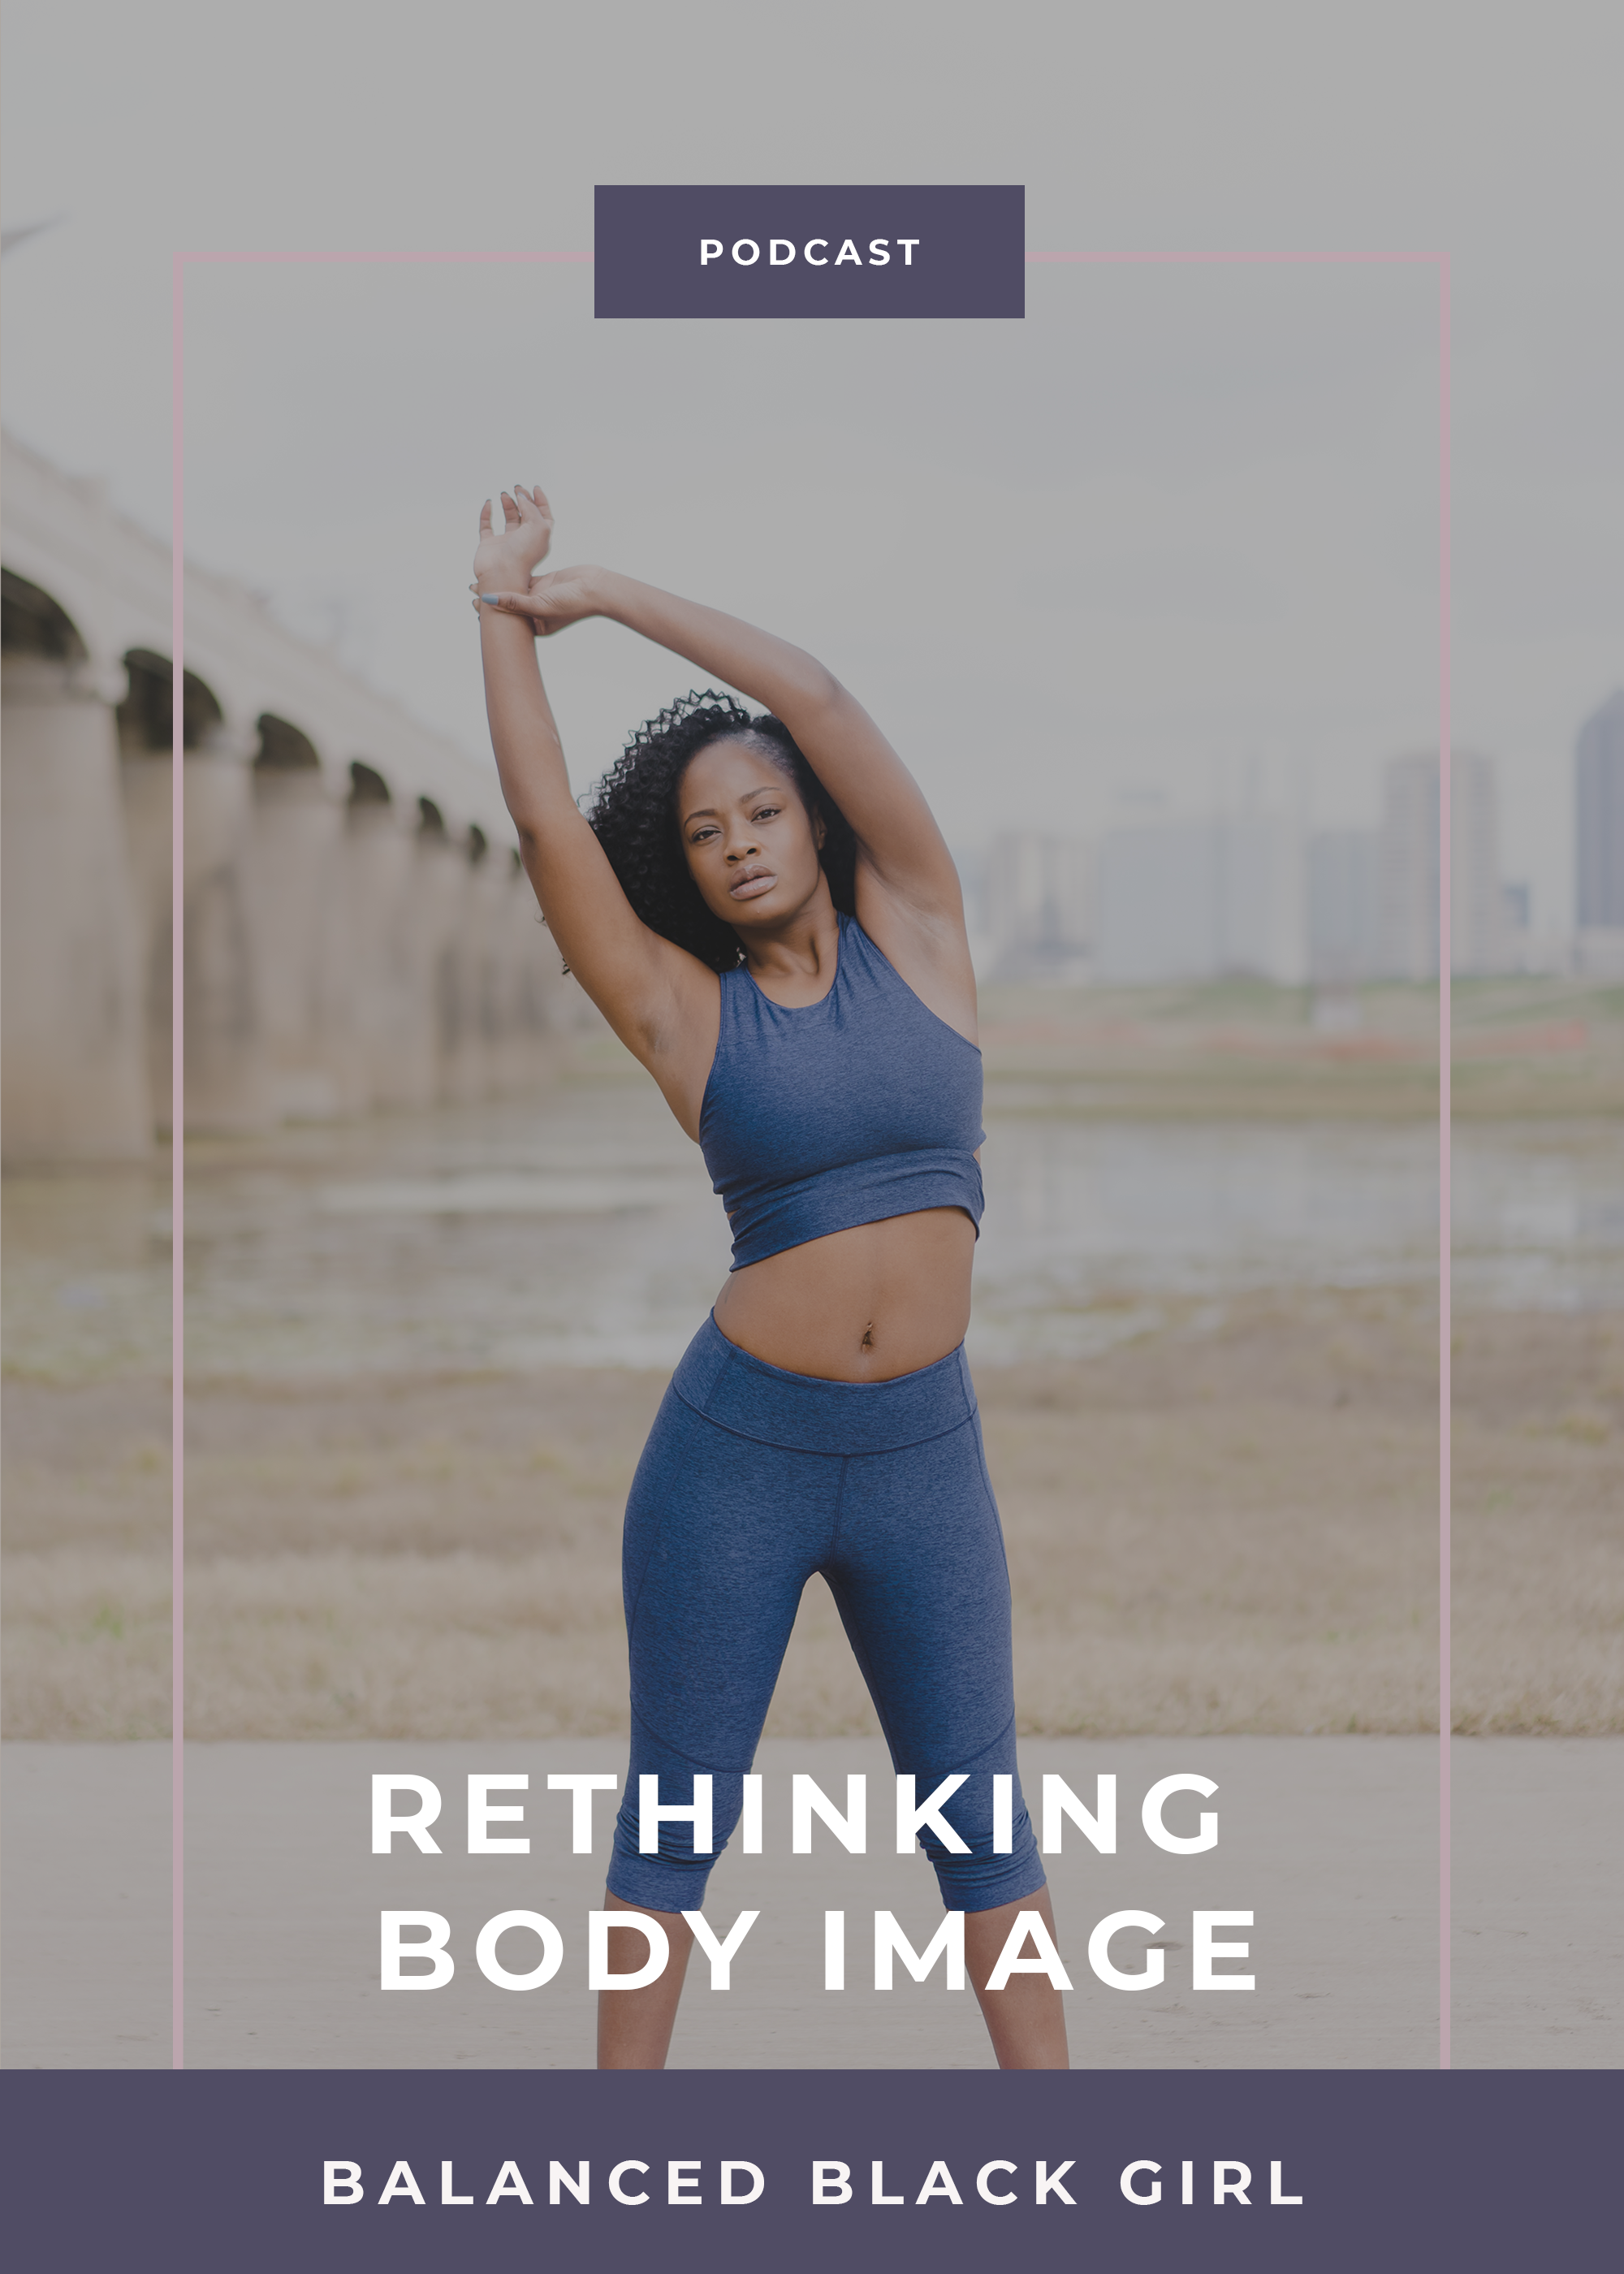 Ready to feel more in control of your thoughts around body image? Tune into this Feel Good Friday episode of the Balanced Black Girl podcast for tips on rethinking body image.